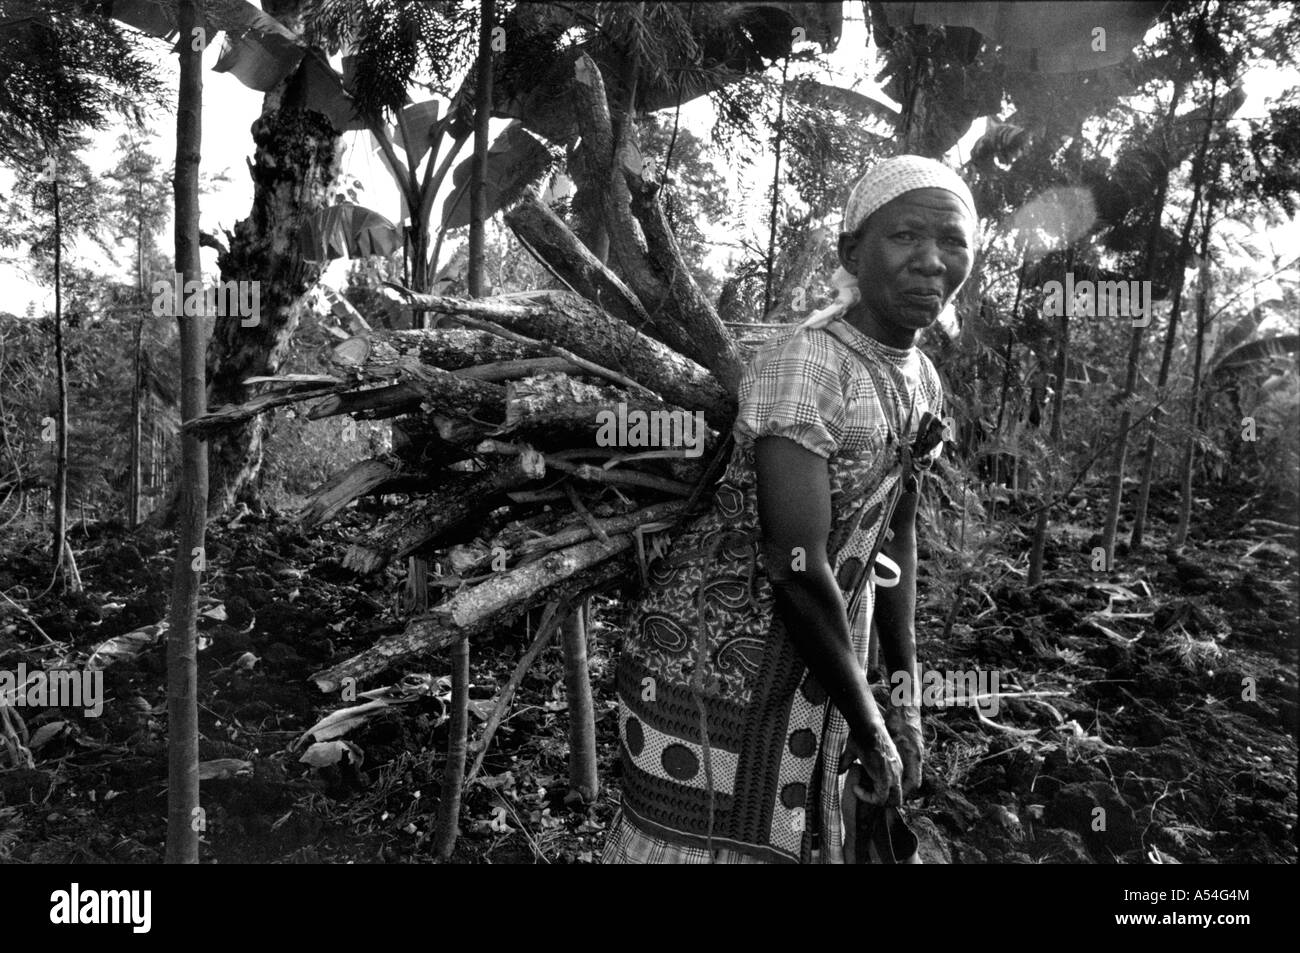 Painet hq1418 black and white environment woman carrying firewood meru kenya images labour smile stress tired women - Stock Image